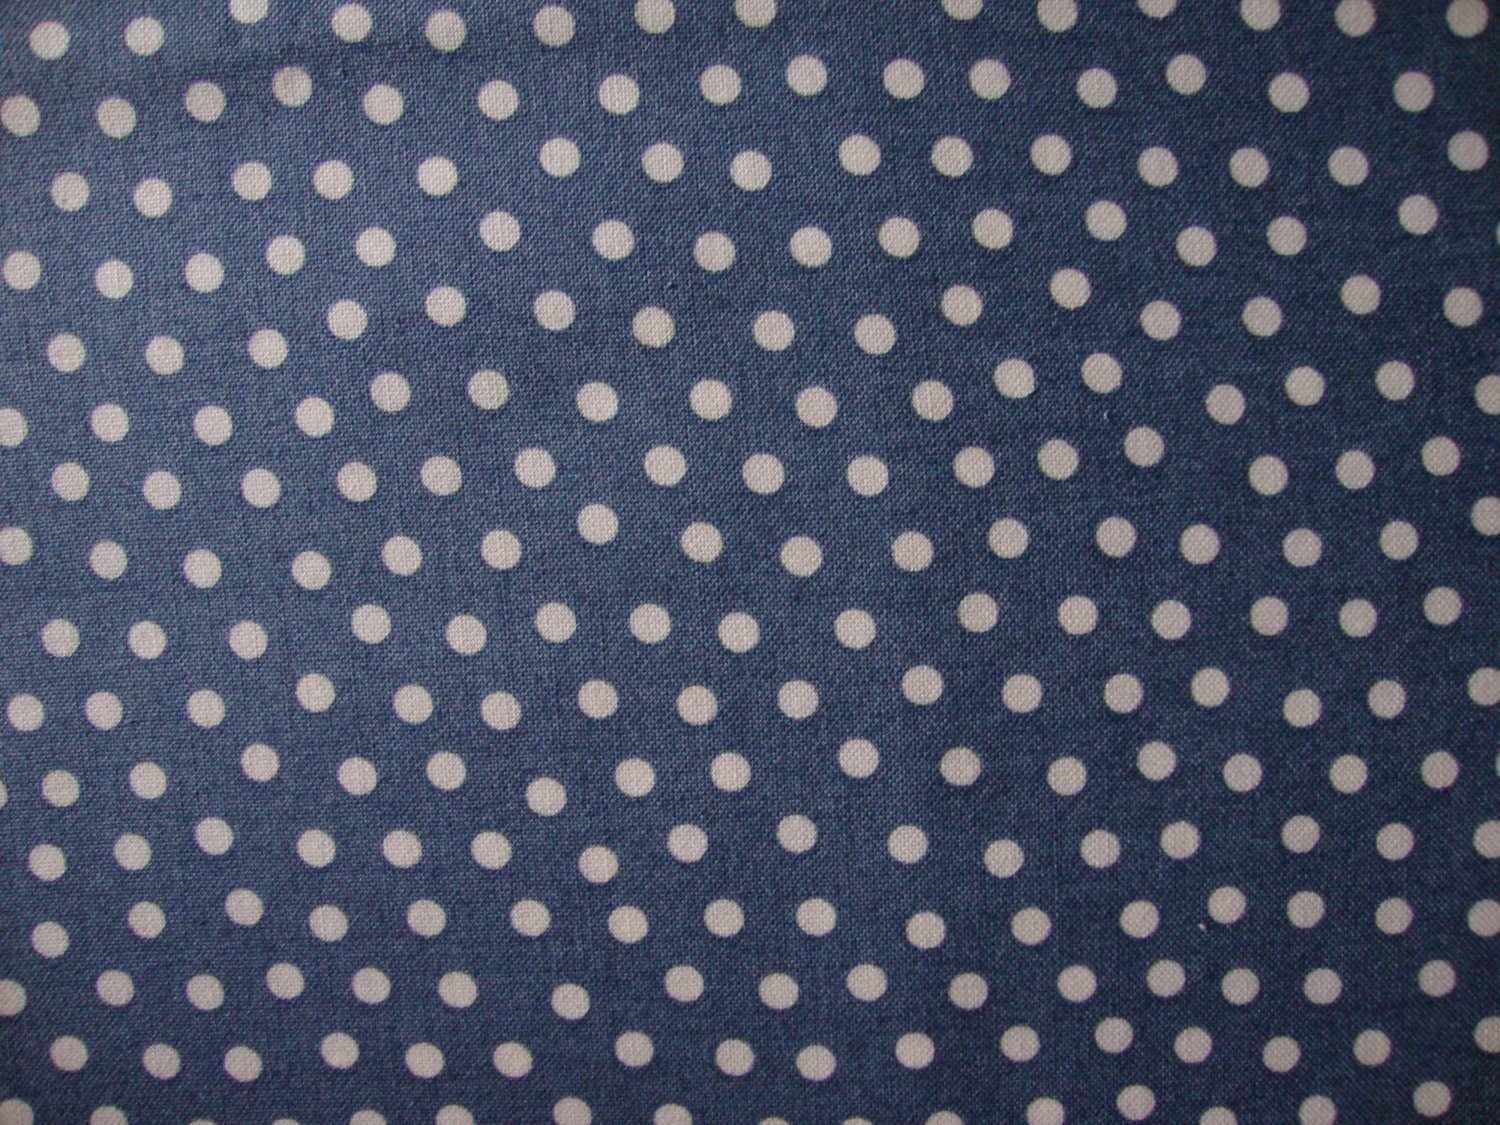 1/4+ Yard Just 4 Fun White Polka Dots on Blue Cotton Fabric Bolt End by Maywood Studios